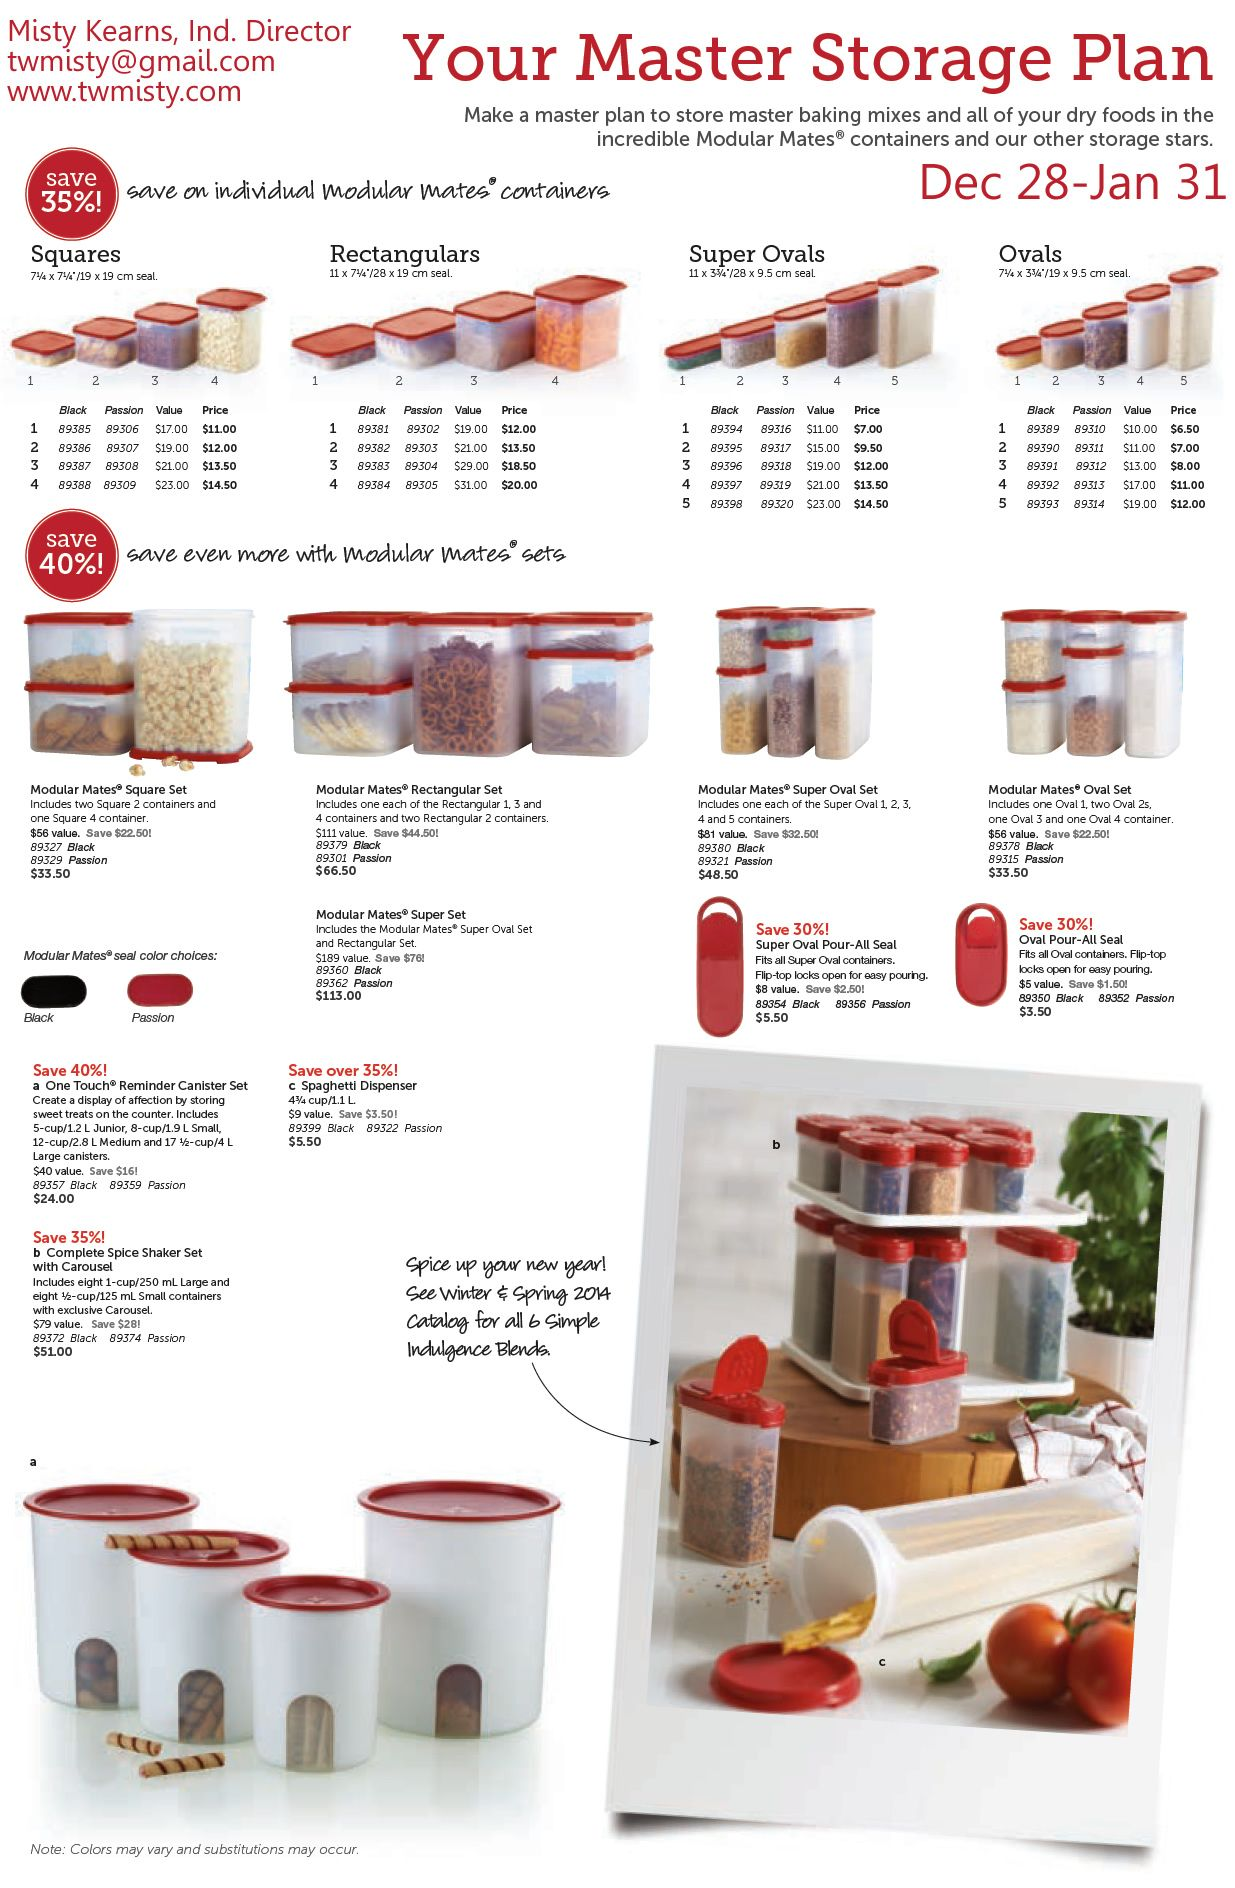 It's our Annual Modular Mates Sale! Get your pantry organized and save tons of time, taste, waste, money & space from here on out. I offer Custom Kitchen Planning Sessions too! Contact me for more info or to order and ask about my special offers! http://my2.tupperware.com/dbrake76 #Tupperware #Kitchen #KitchenOrganization #Organization